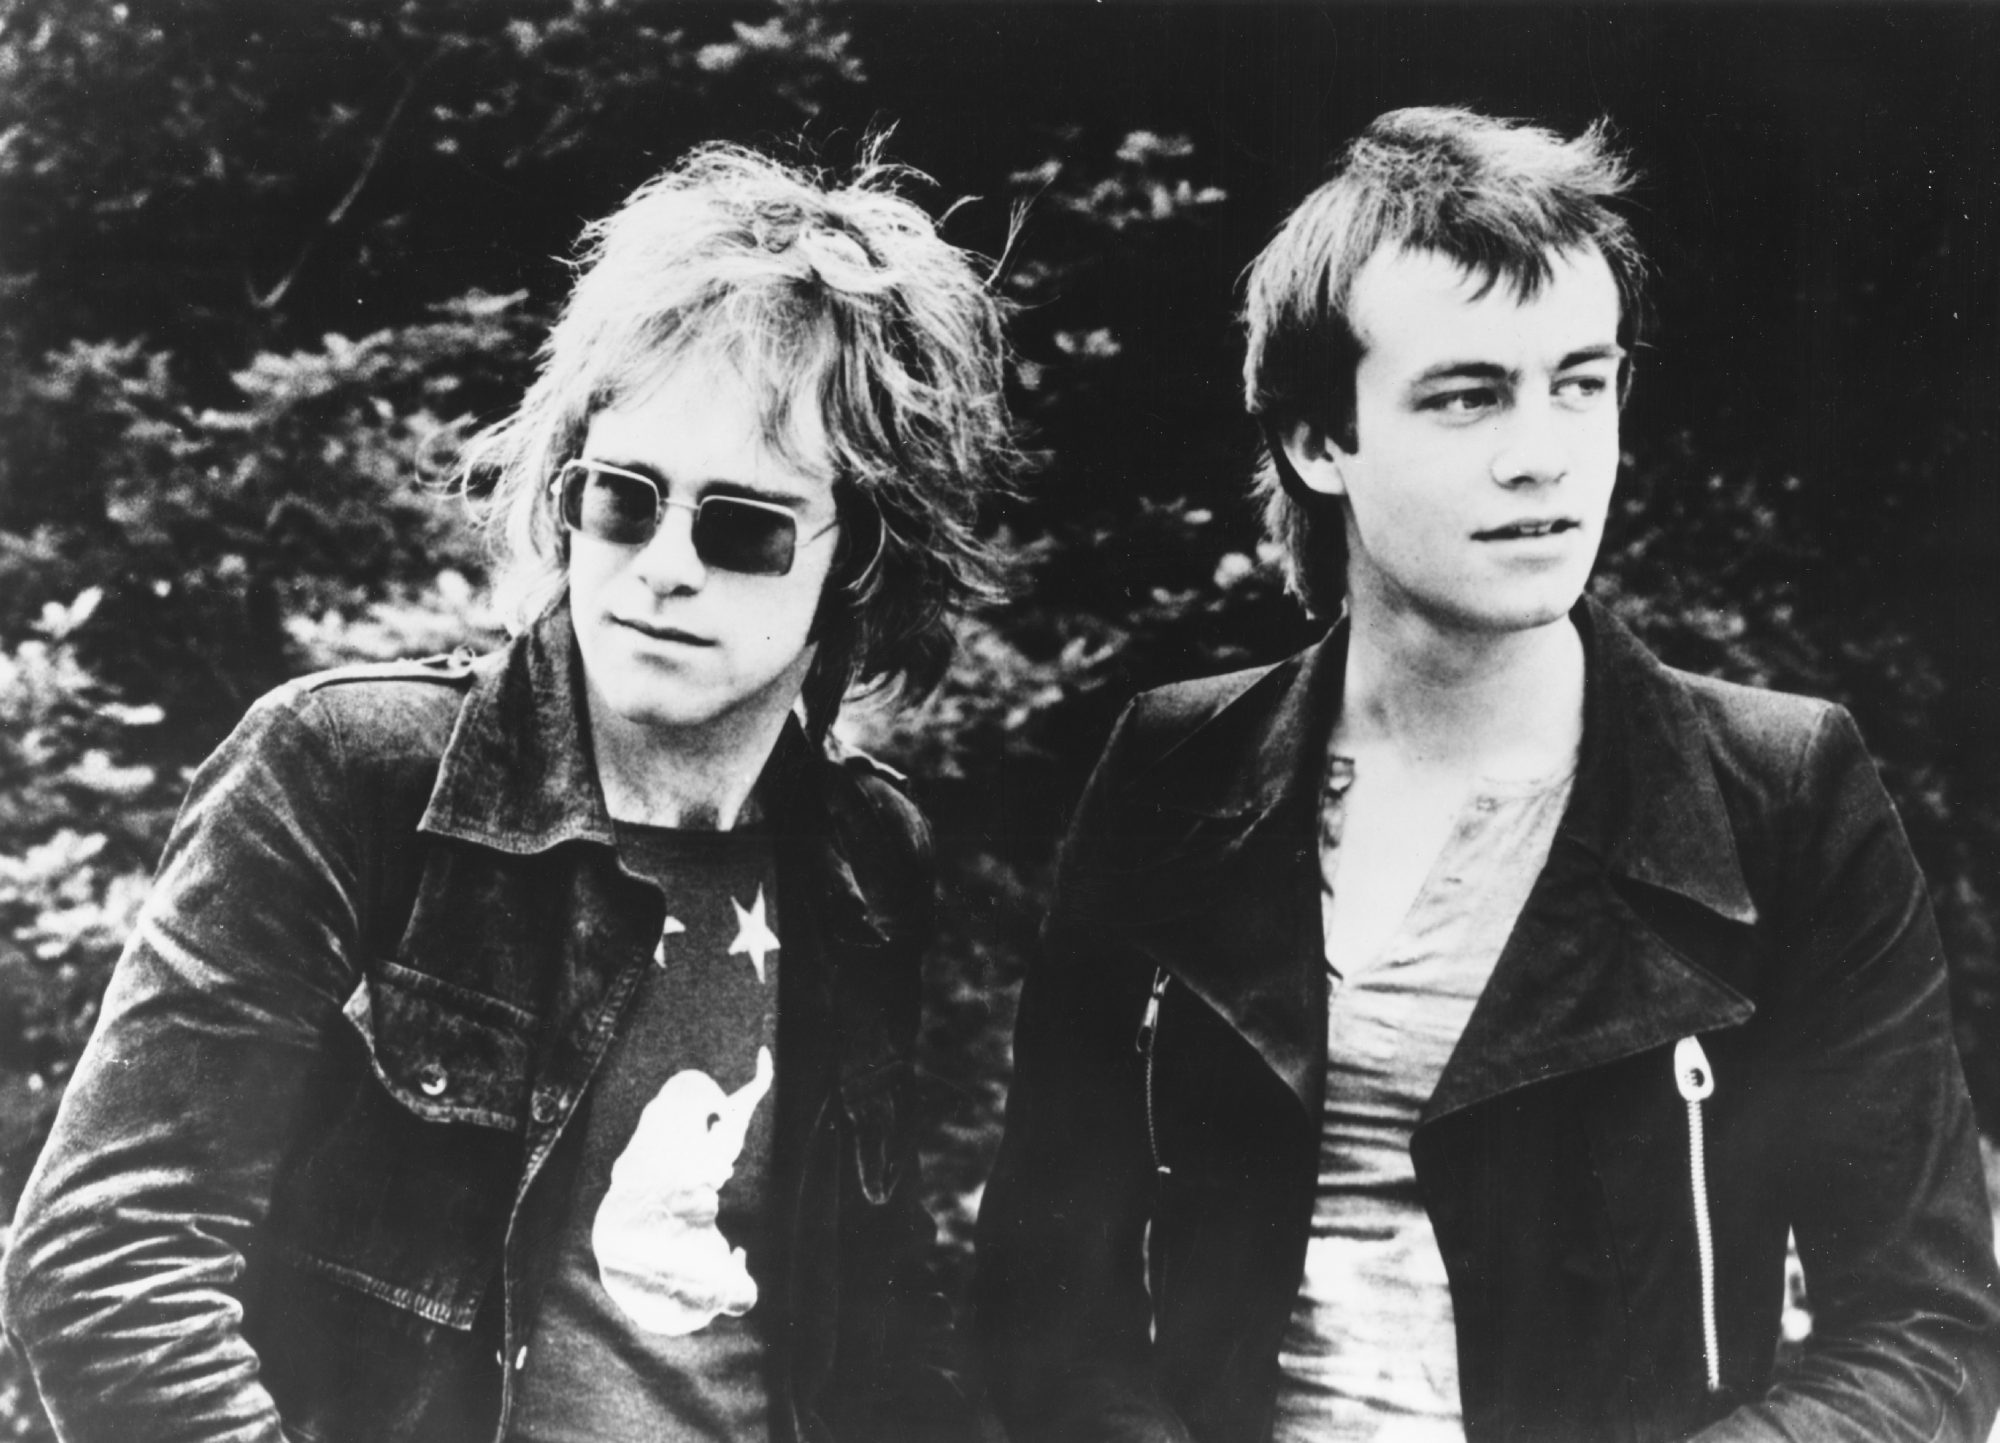 Bernie Taupin Recalls The Early Days Of His Musical Partnership With Elton John People Com